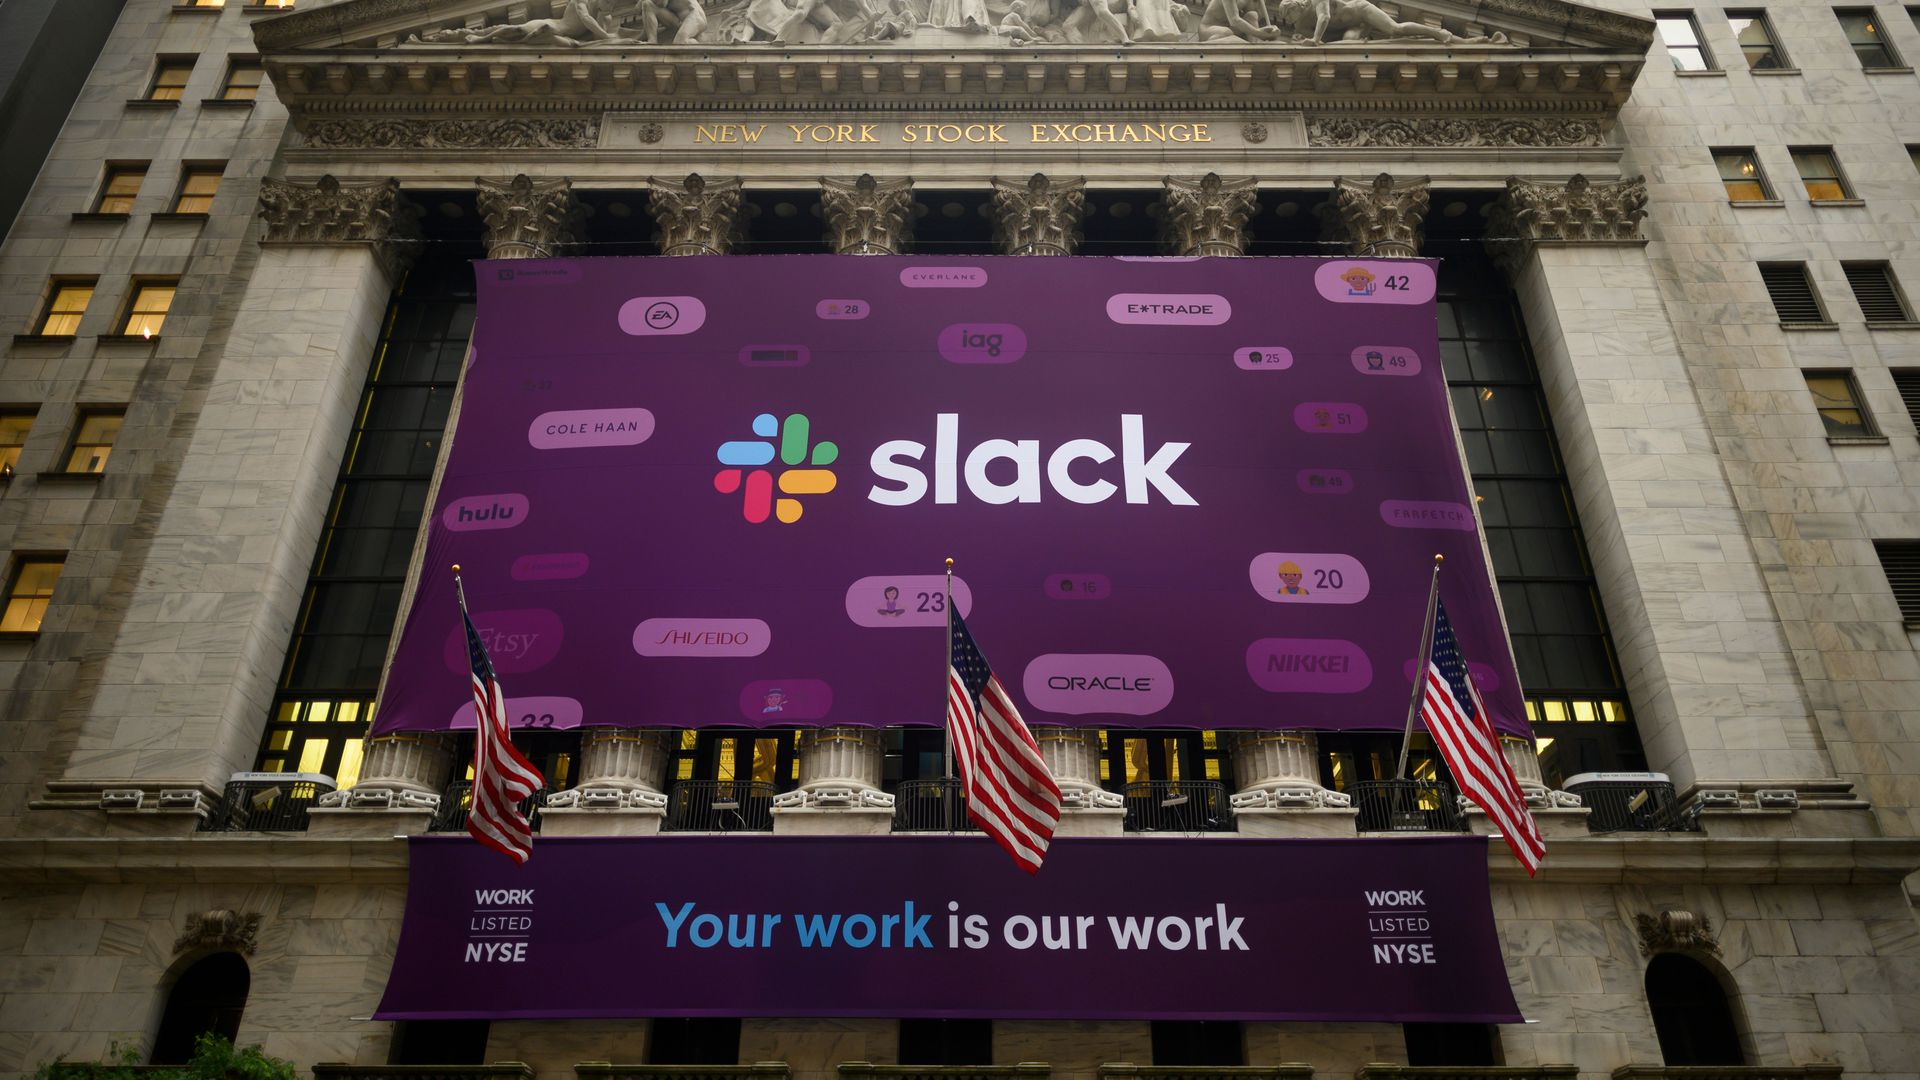 Slack goes public at the New York Stock Exchange